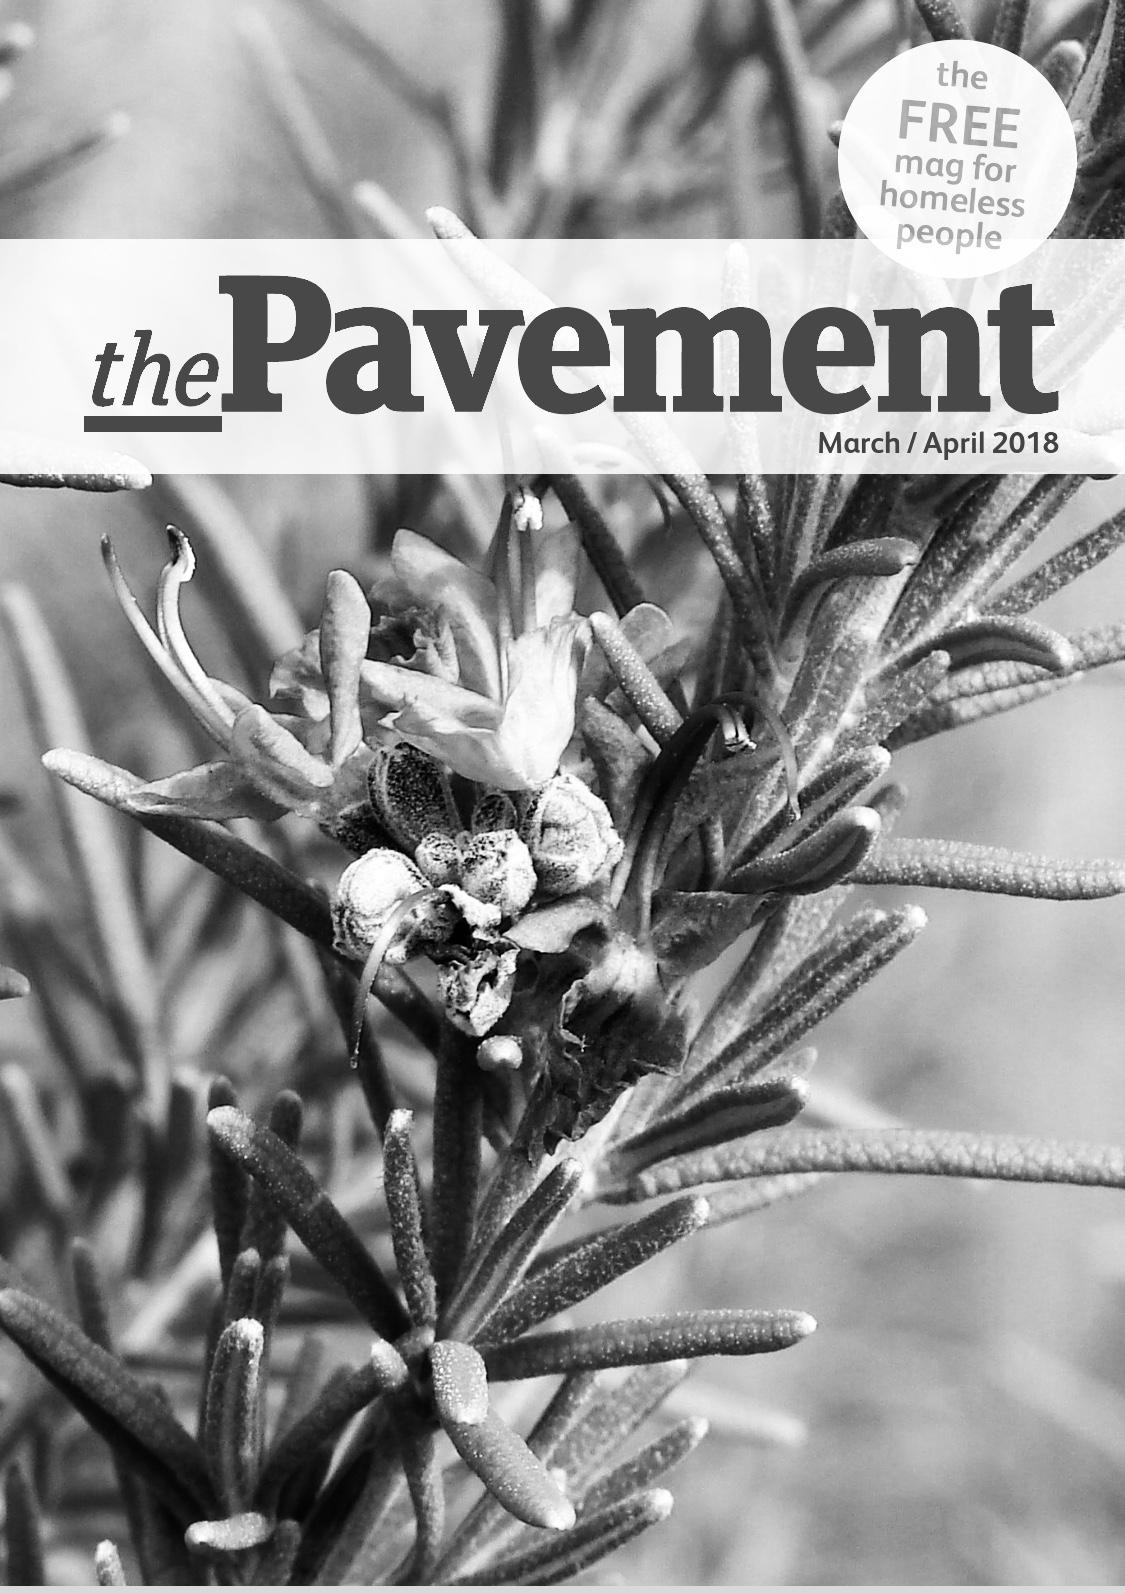 Front cover of the Pavement suicide edition